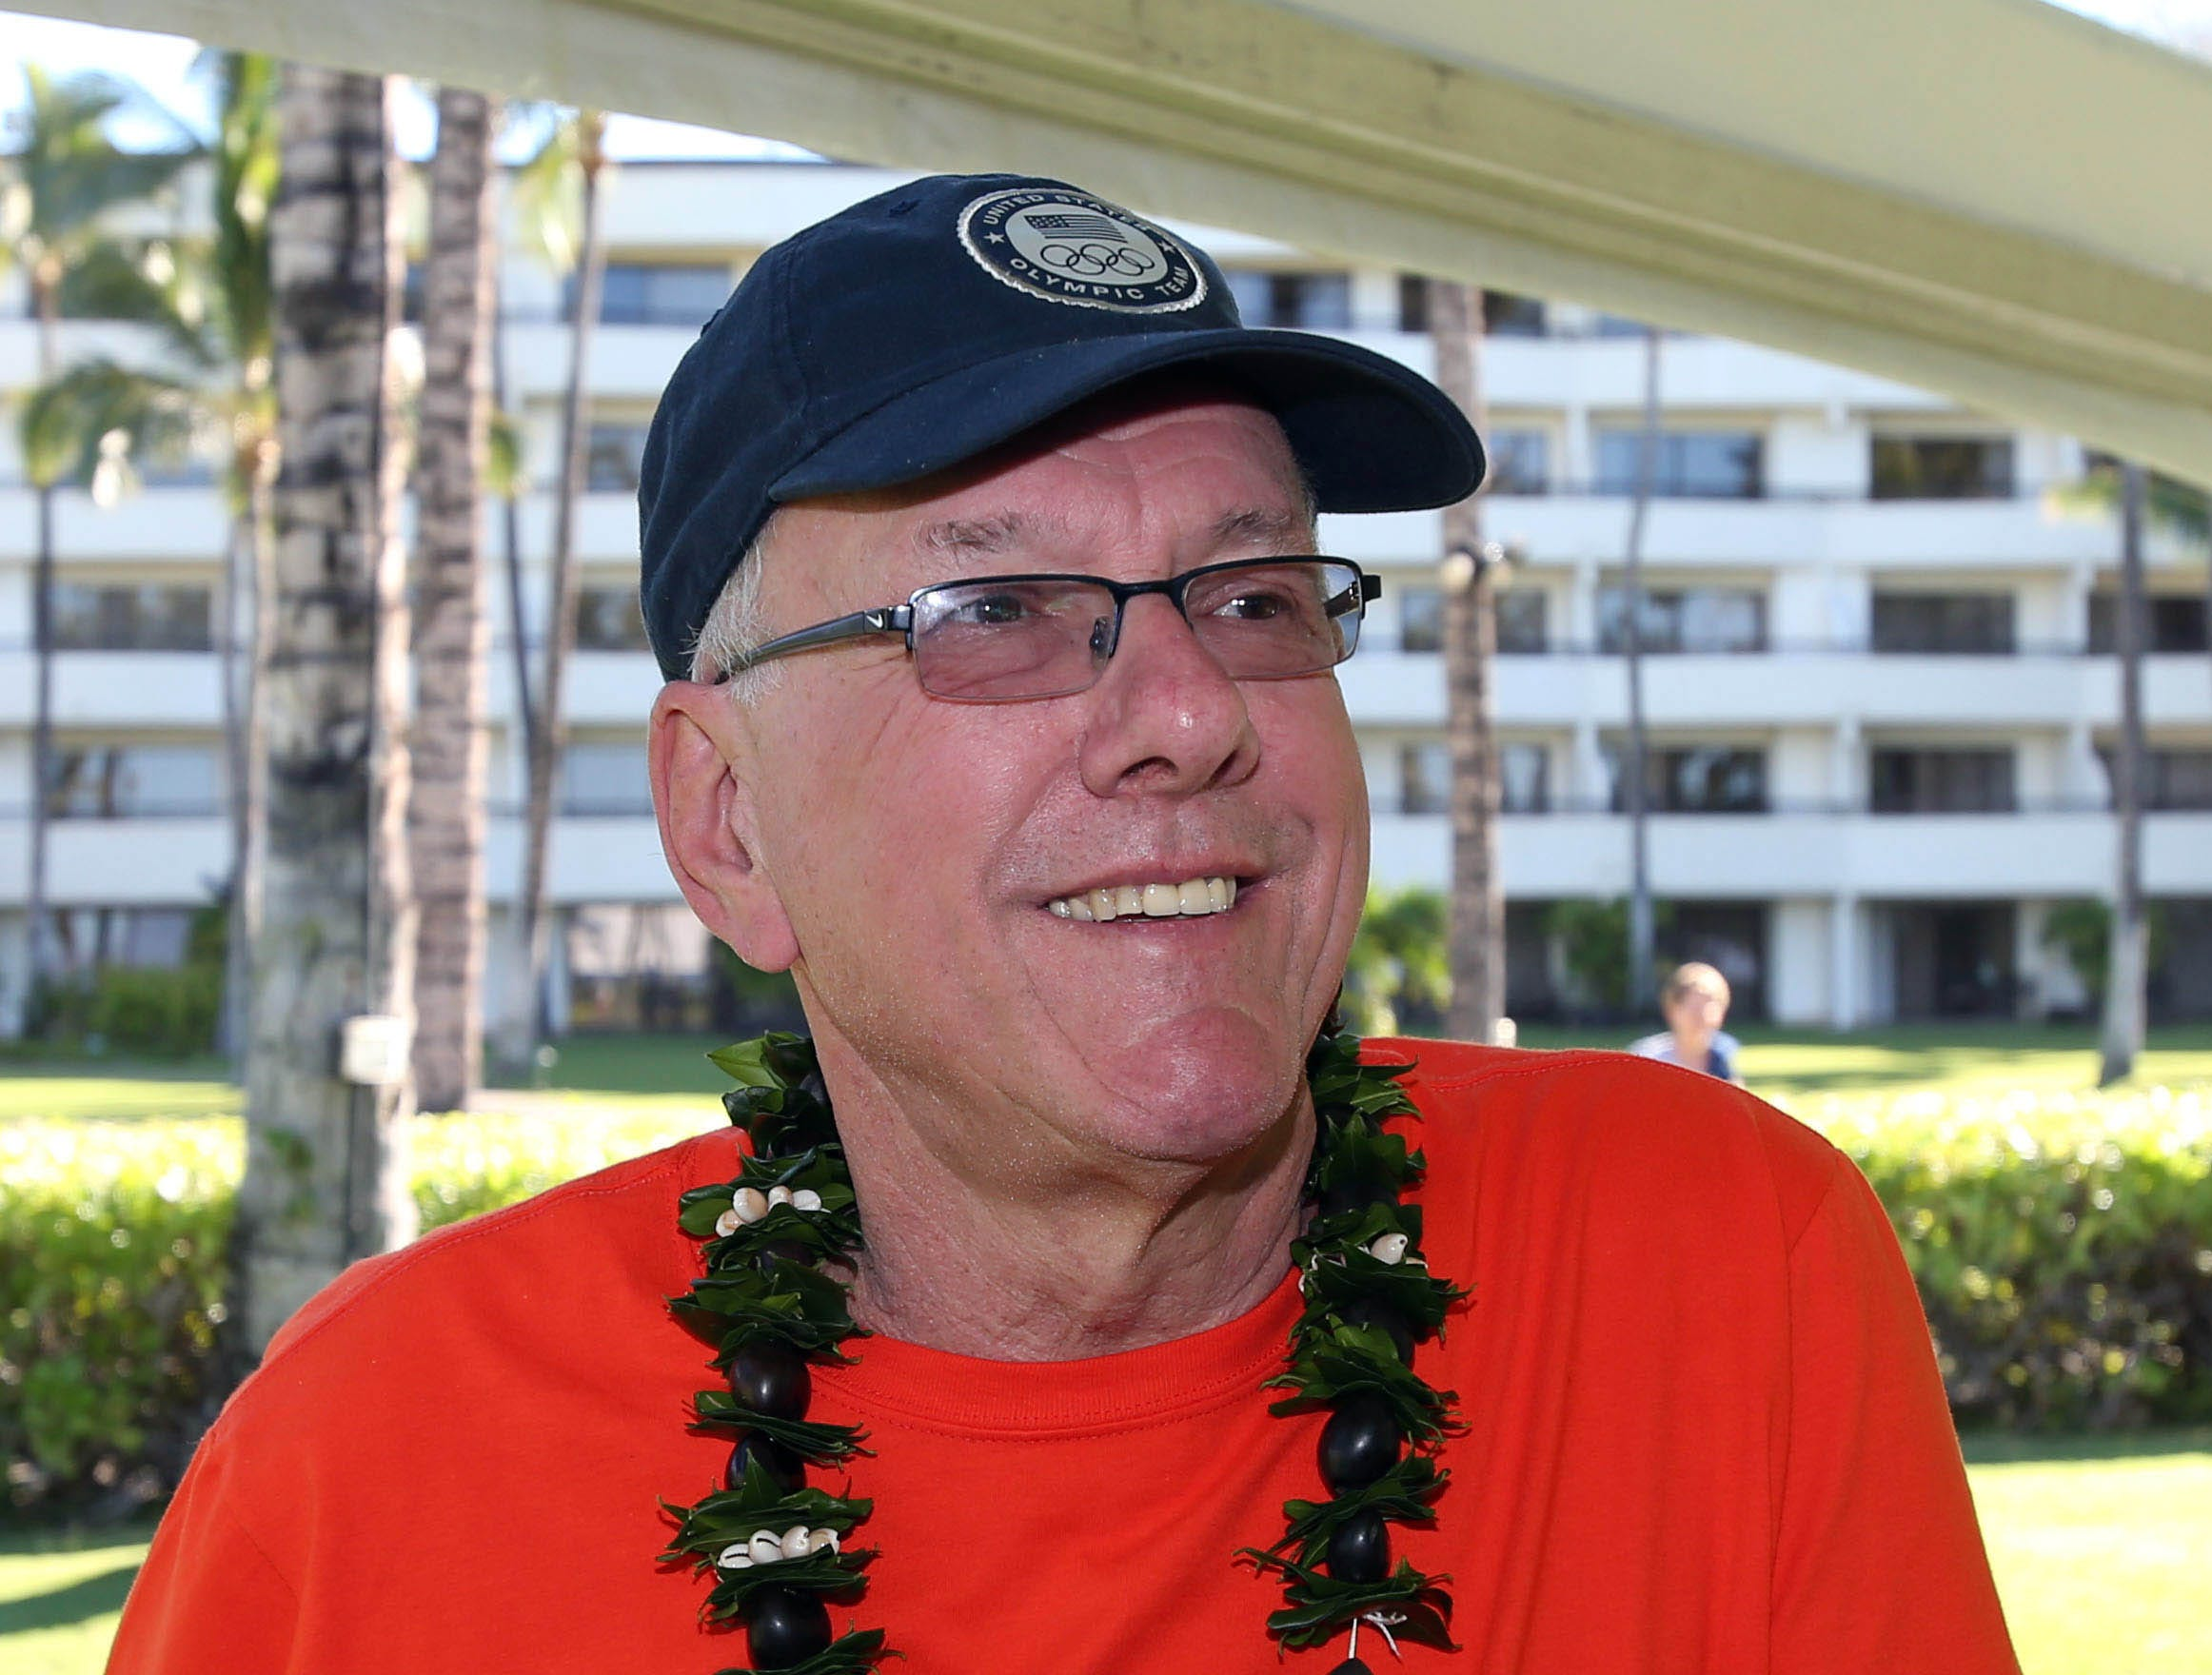 2013: Syracuse Orangemen coach Jim Boeheim speaks during a press conference for the Maui Invitational held at the Sheraton Resort in Lahaina. (Credit: Brian Spurlock-USA TODAY Sports).